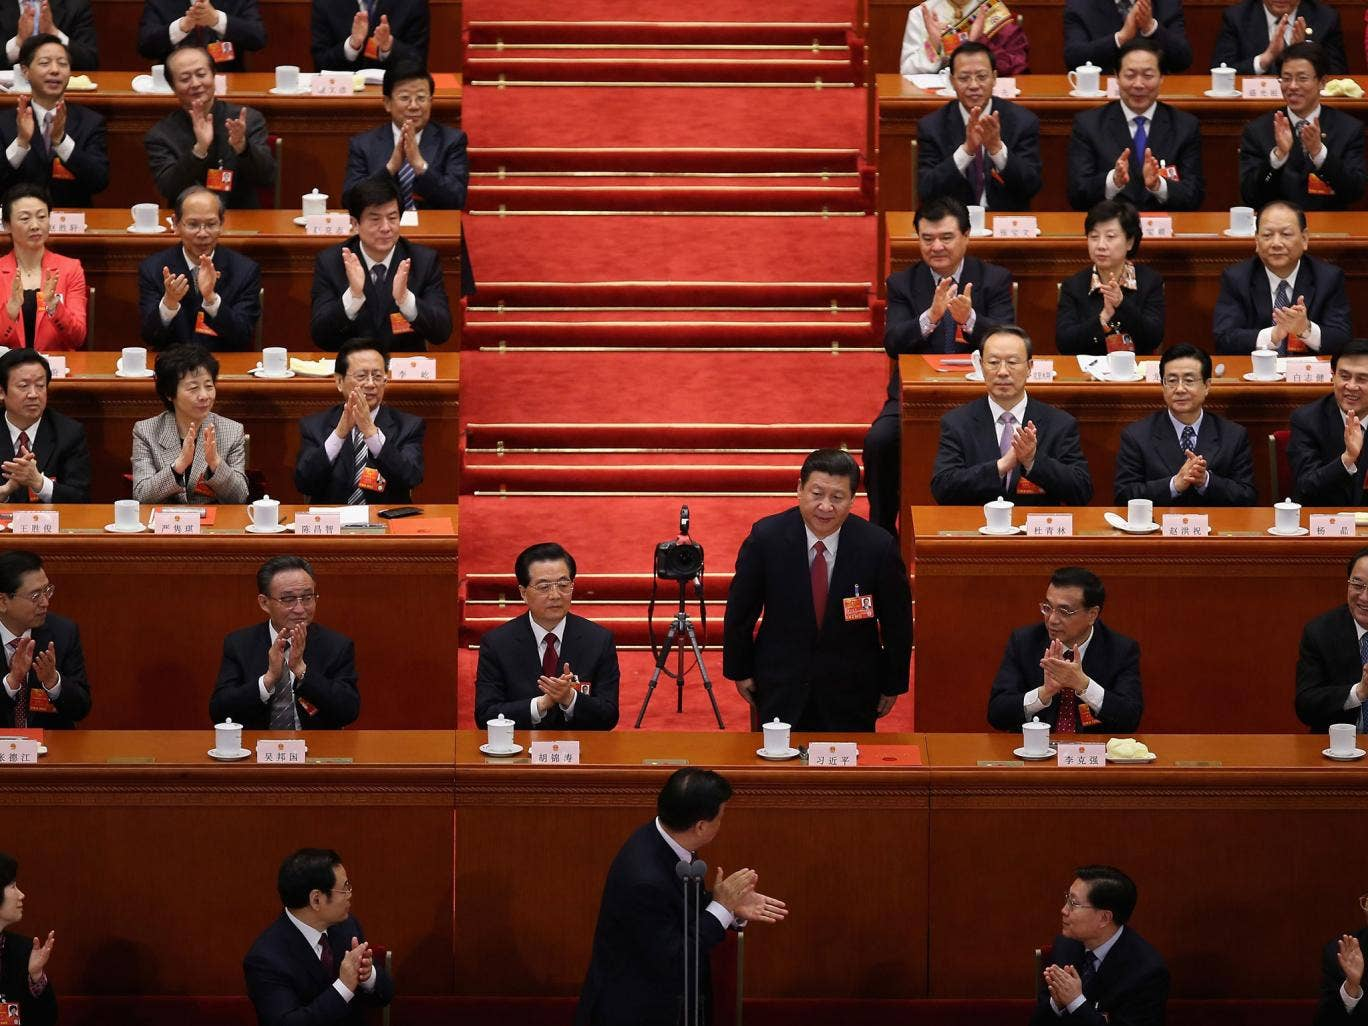 Newly elected President Xi Jinping is applauded by delegates